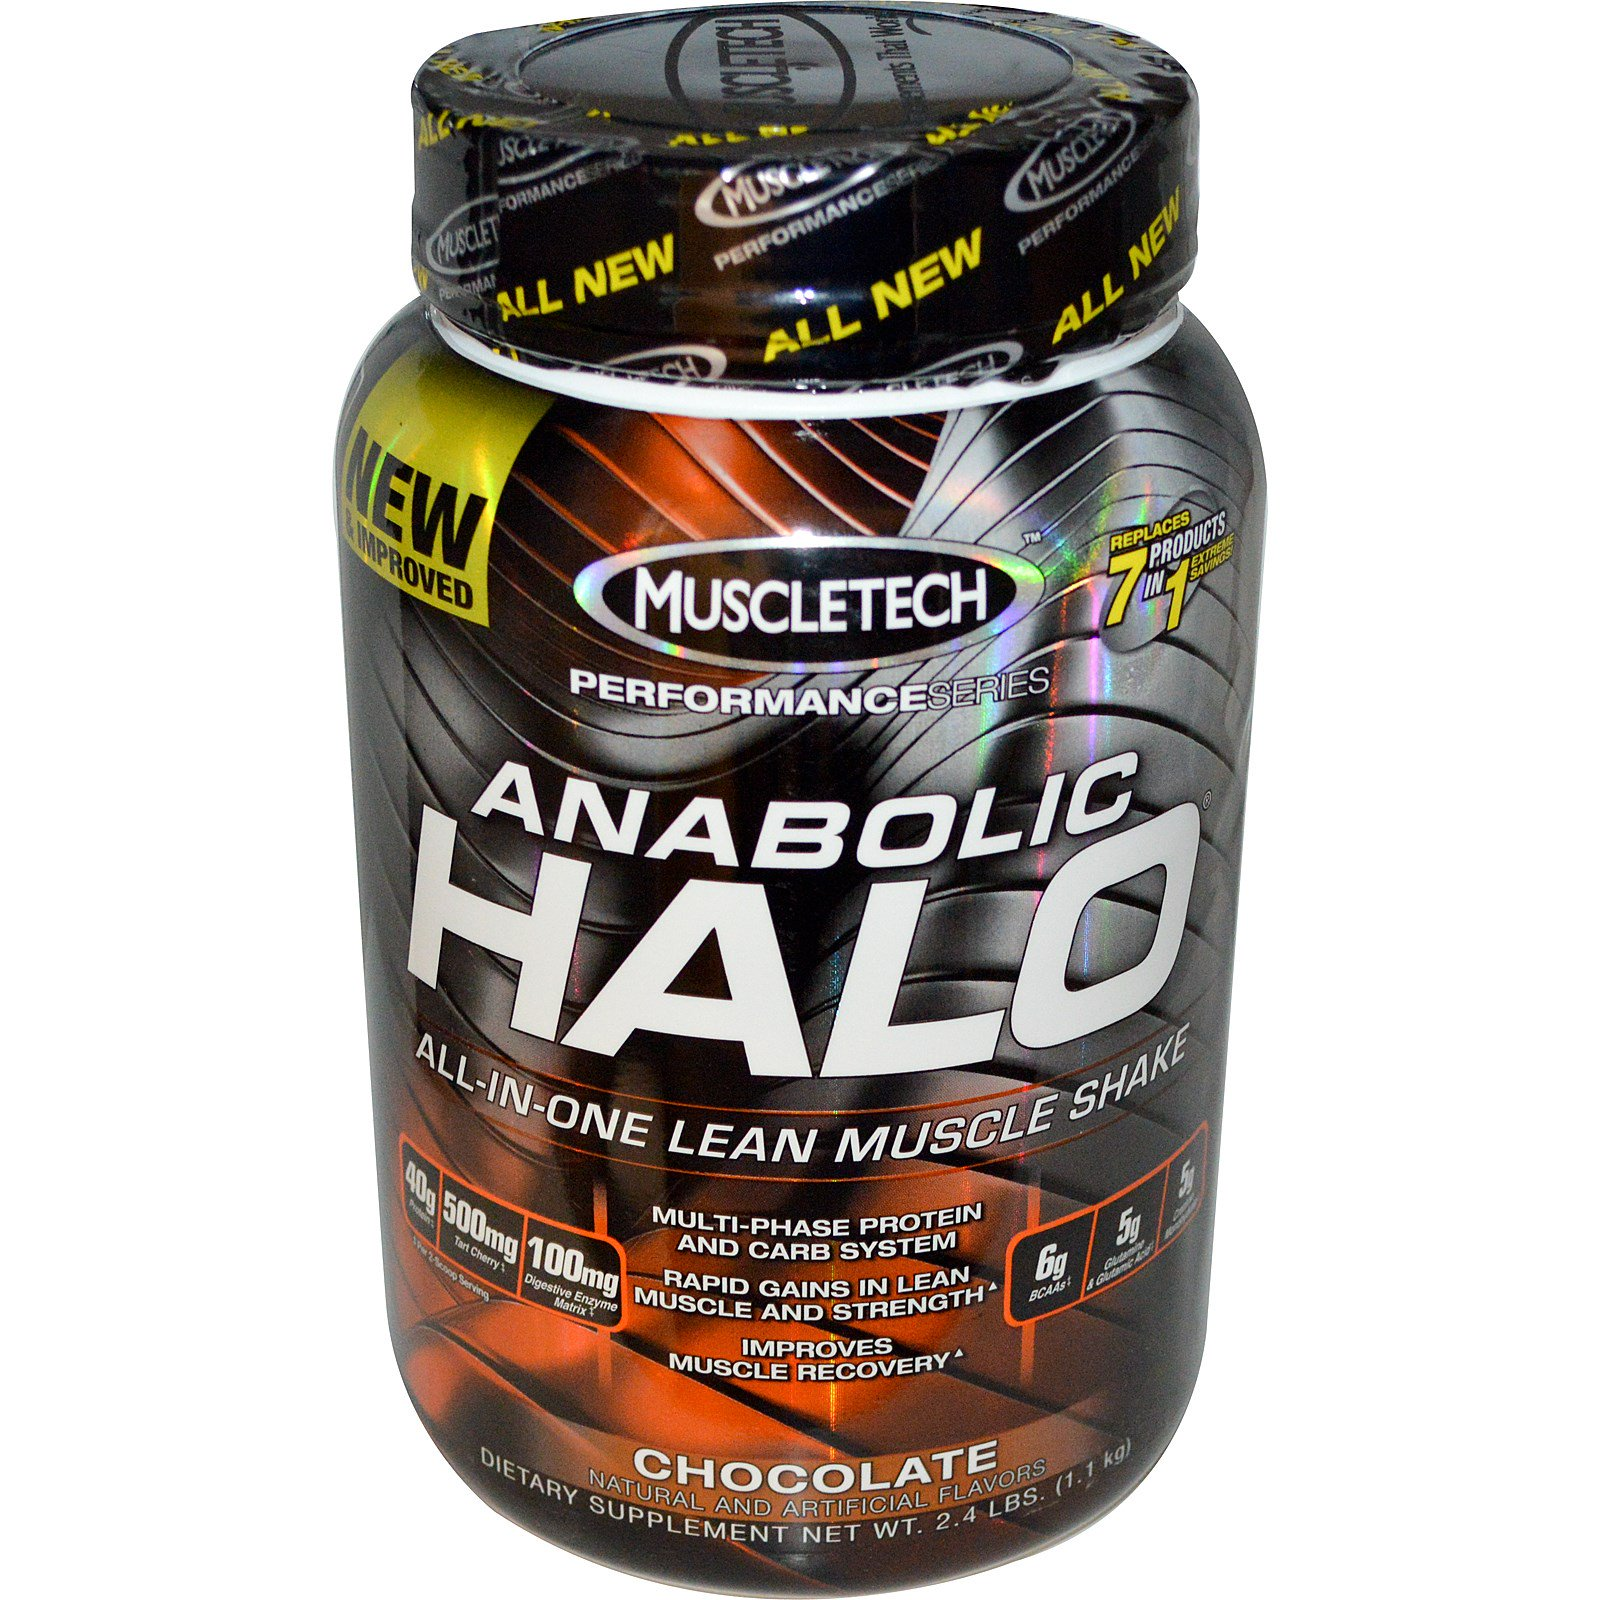 Halo workout supplement